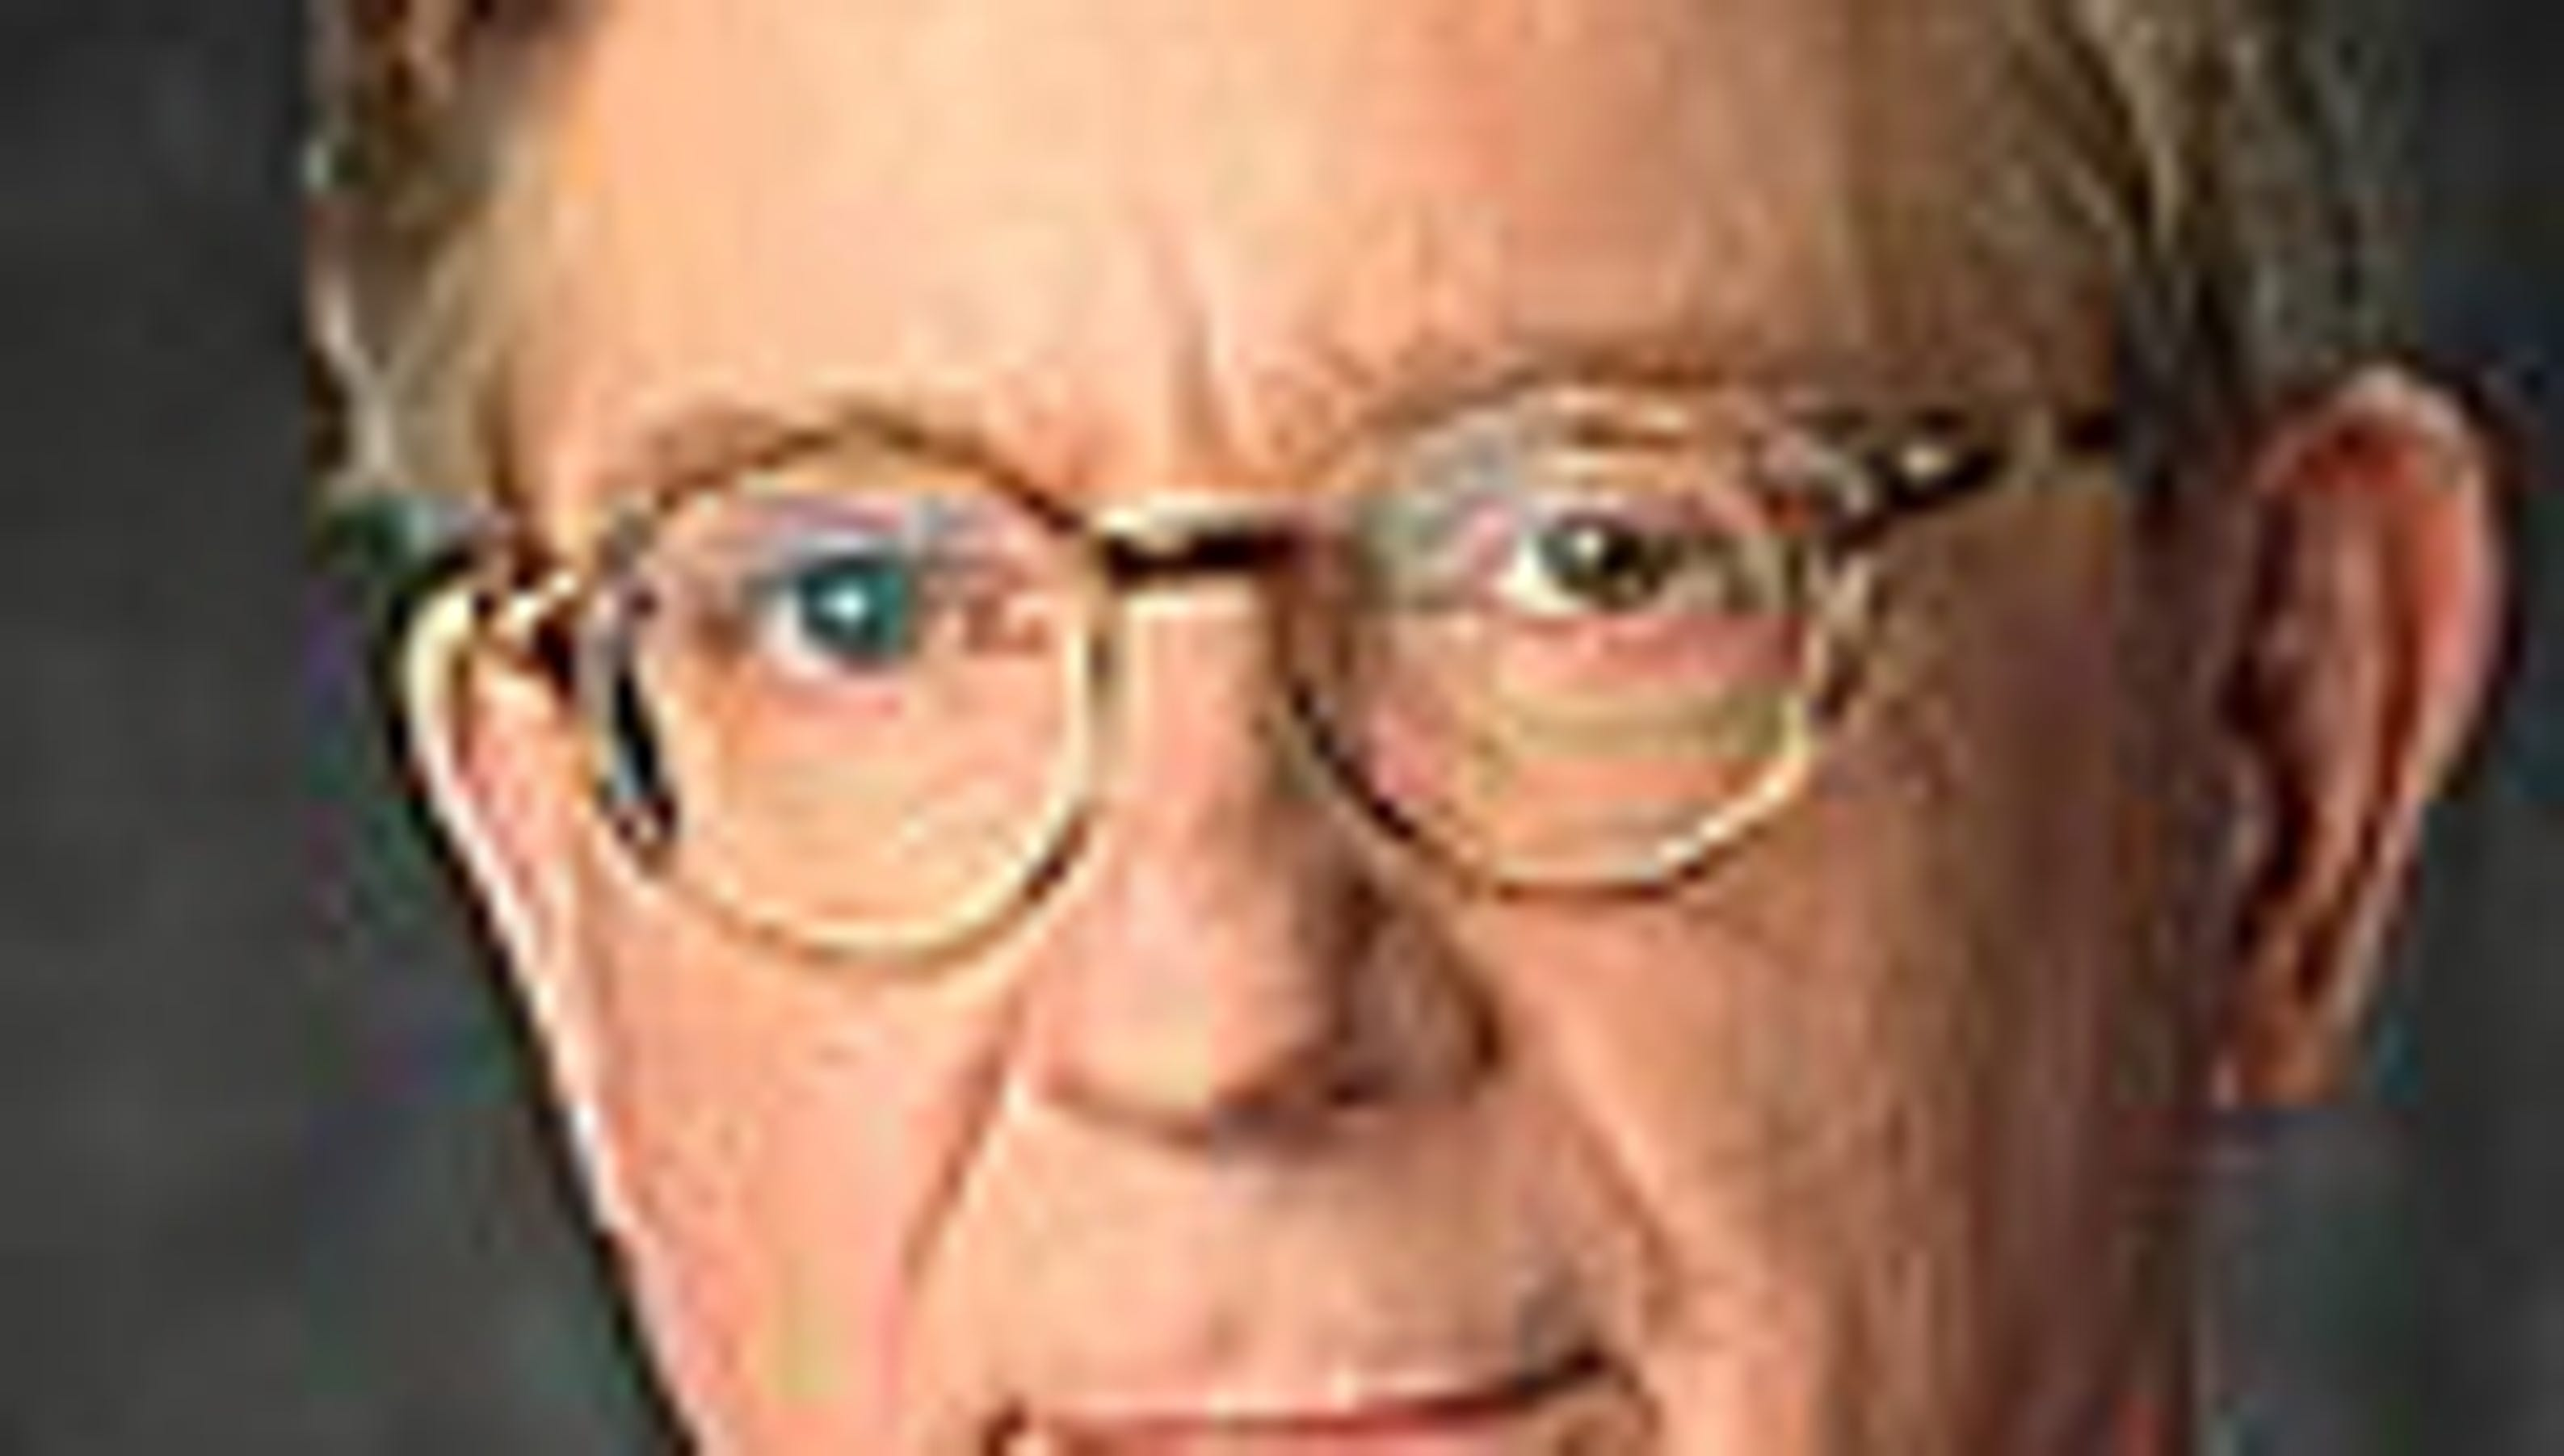 George Will: The plague of overcriminalization - Richmond